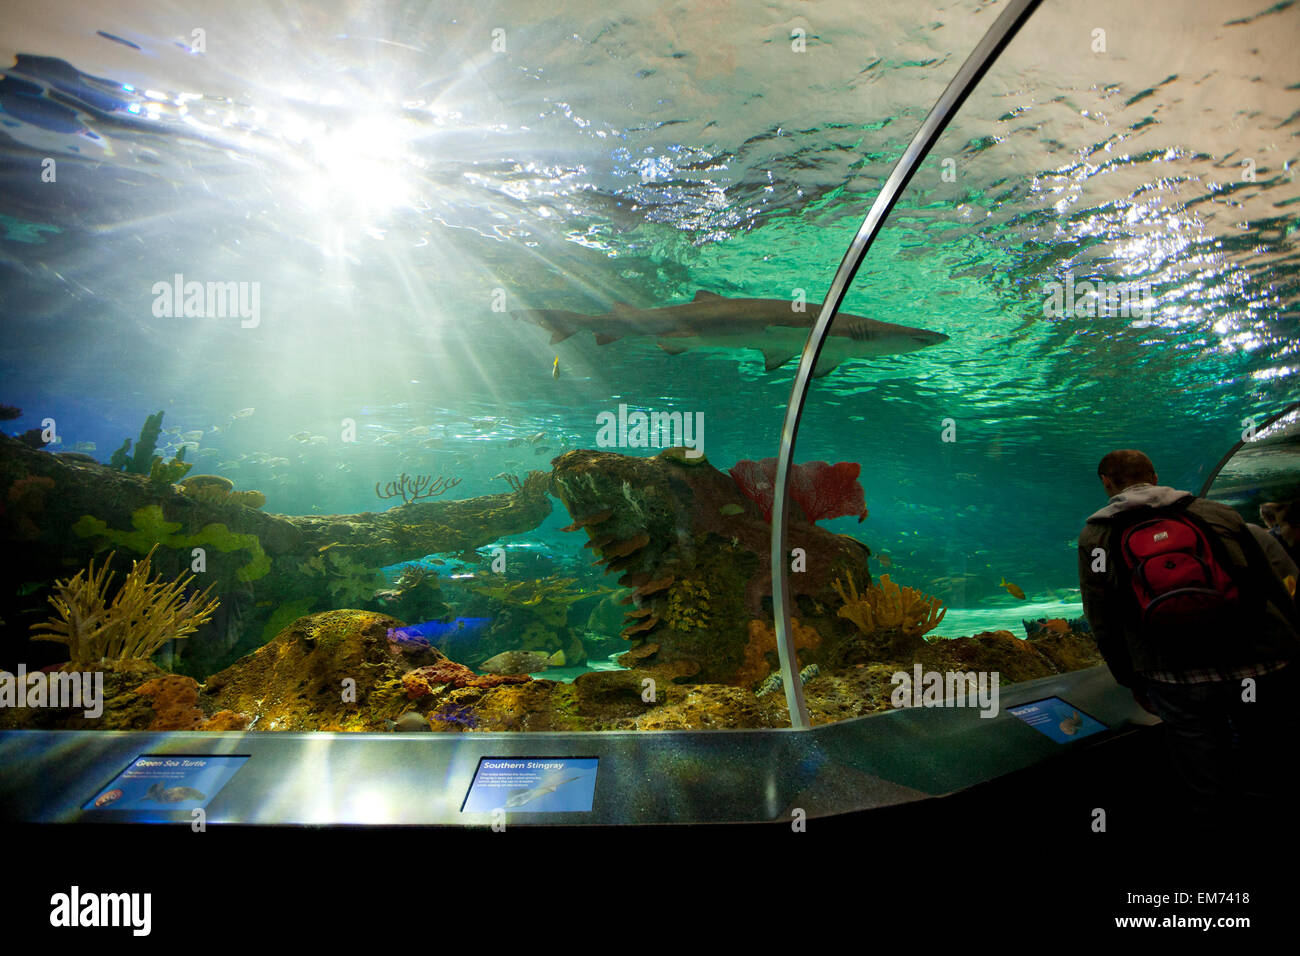 TORONTO- SEPTEMBER 15, 2014: Shark tank at Ripley's Aquarium Canada loacated at the foot of the CN tower in - Stock Image